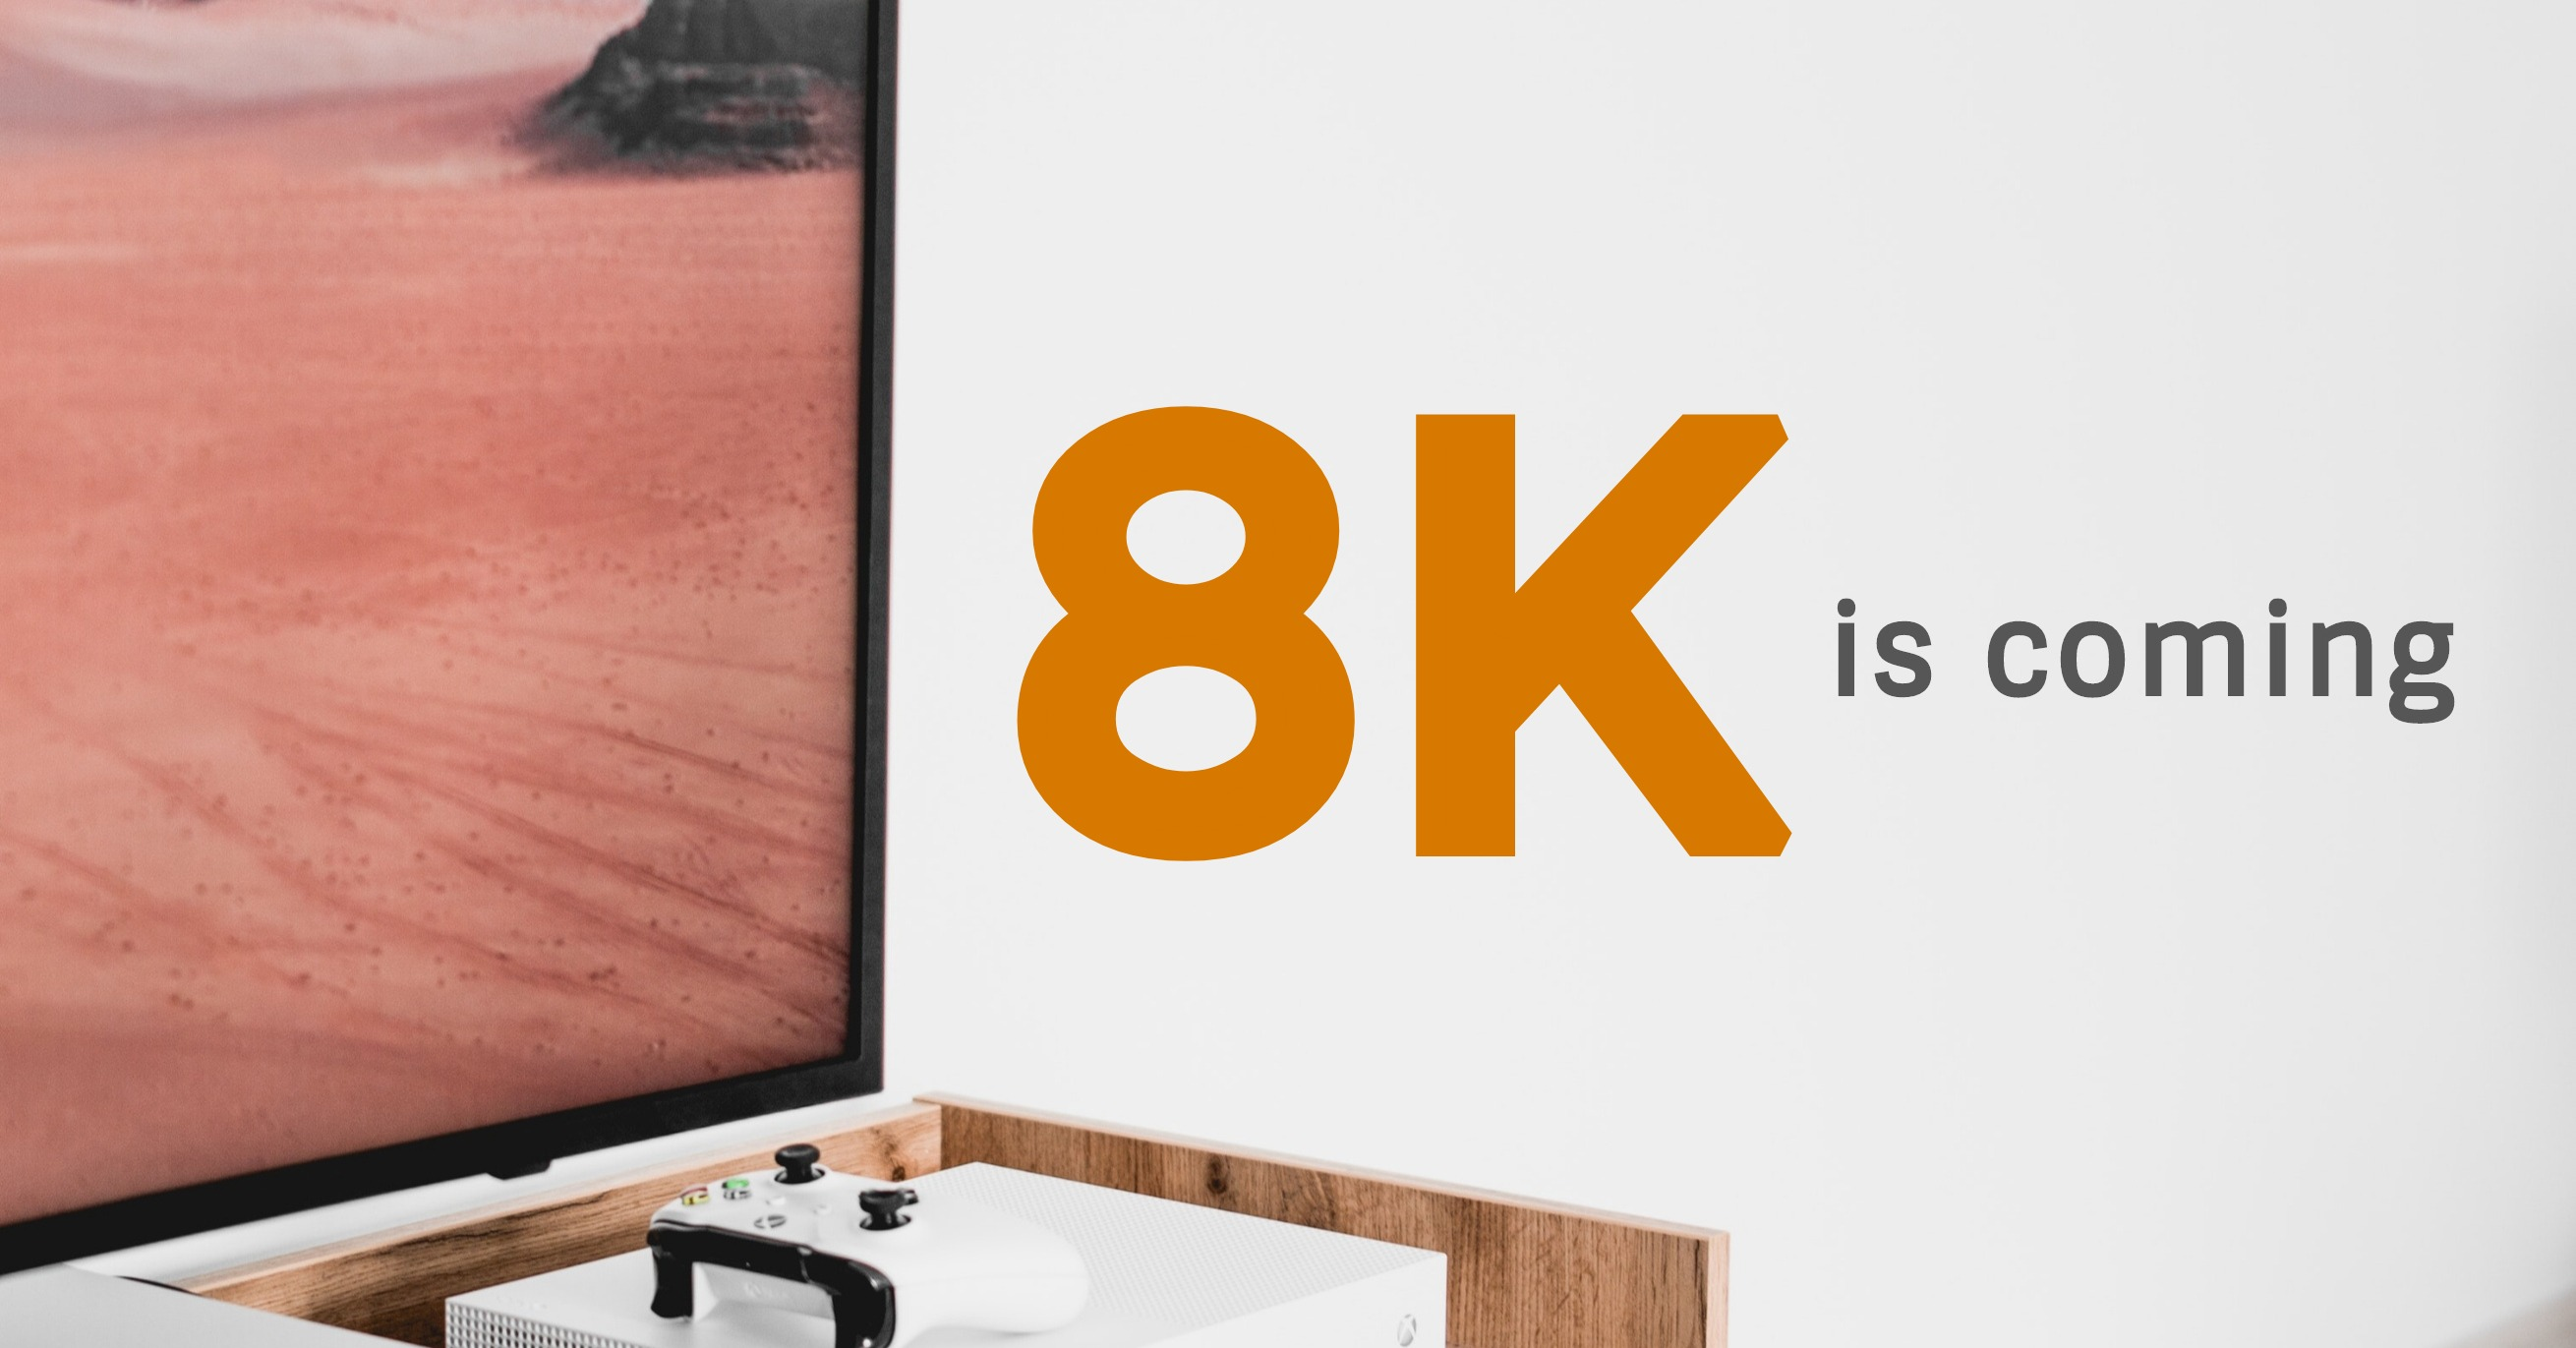 8K is coming... time to upgrade?